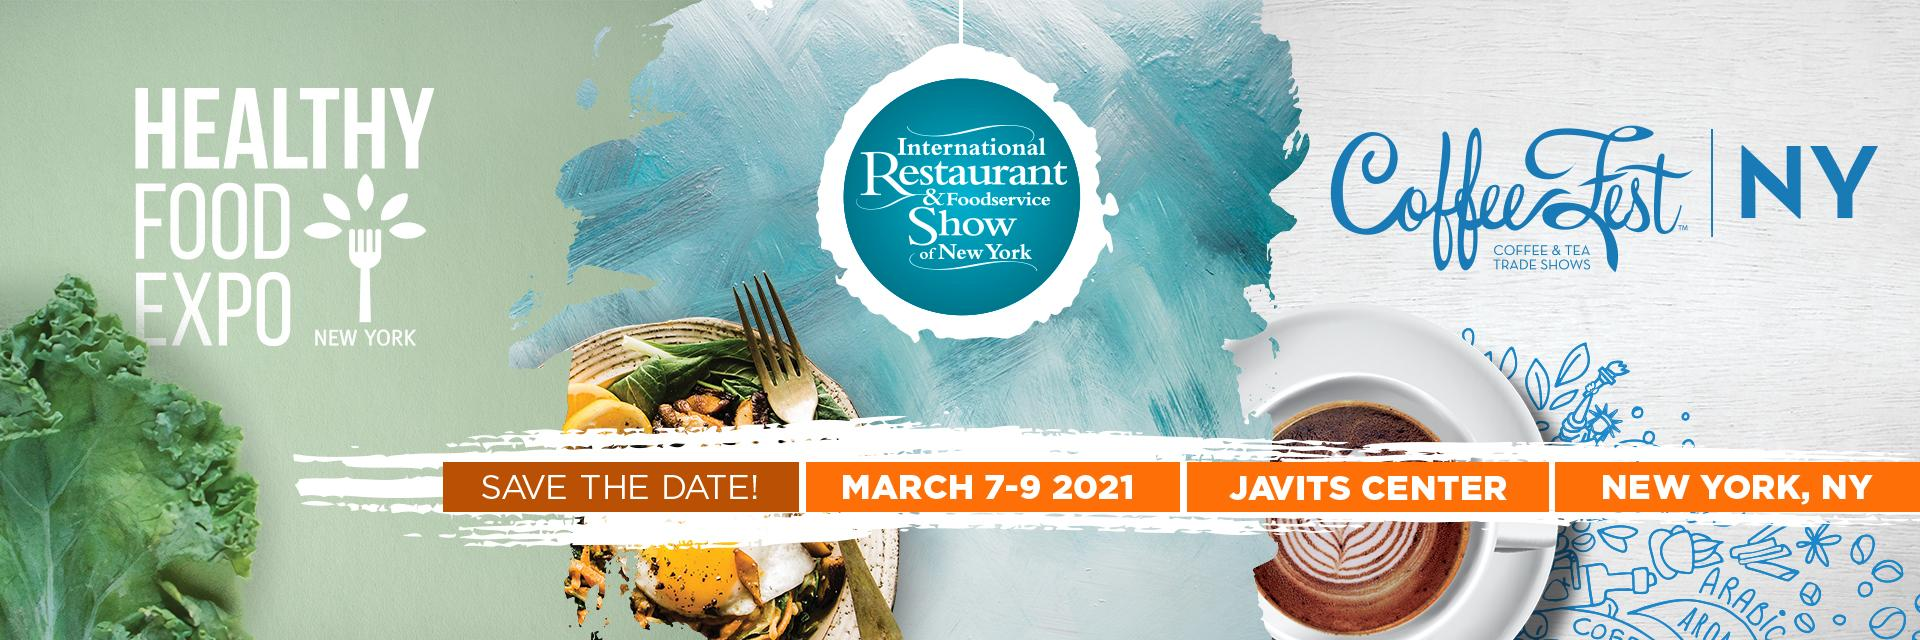 International Restaurant & Foodservice Show of NY - March 2021